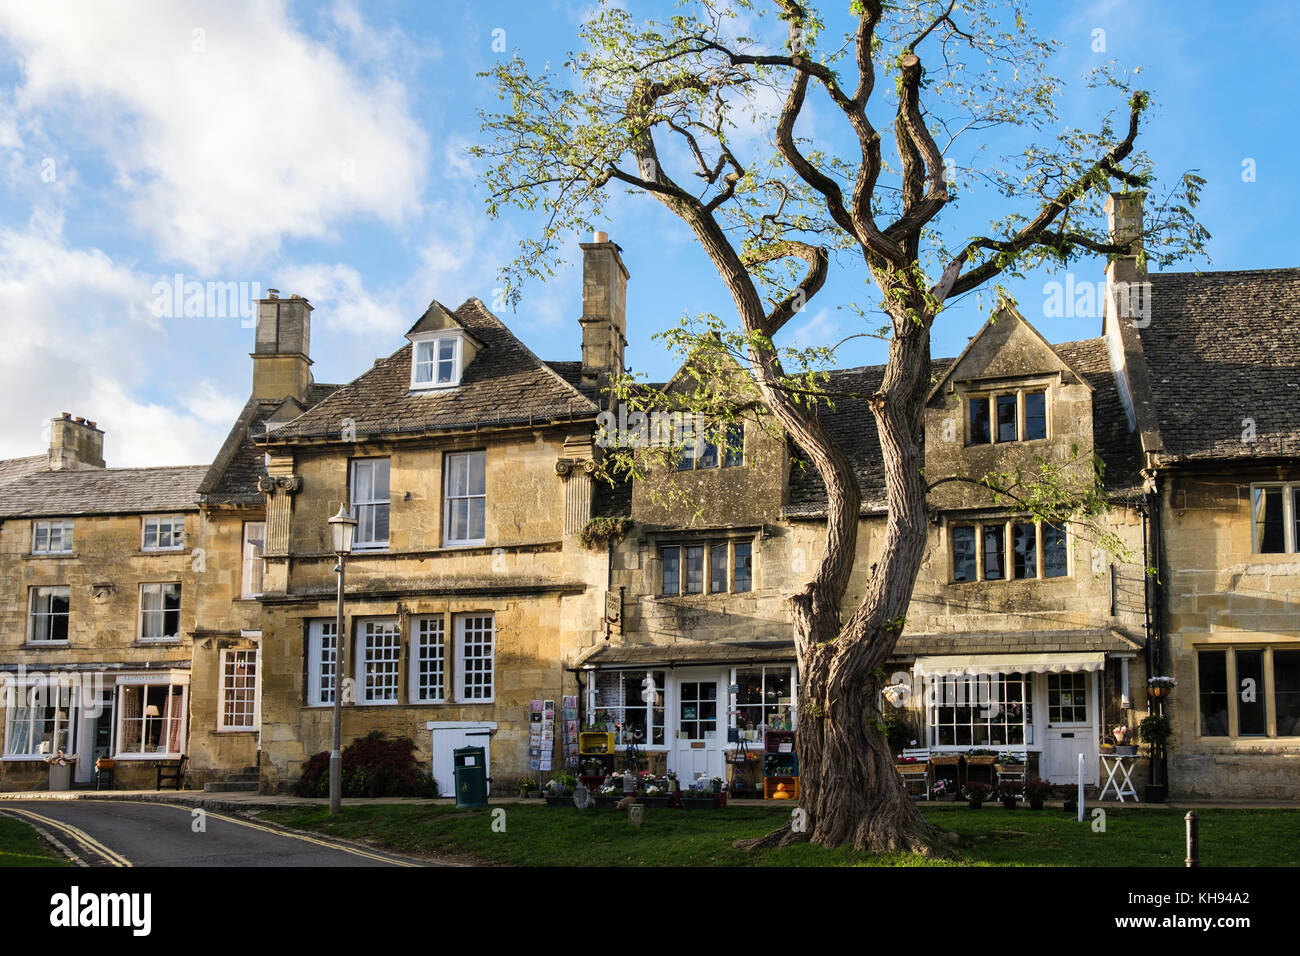 Cotswold stone buildings and shops in historic Cotswolds AONB village. High Street, Chipping Campden, Gloucestershire, - Stock Image